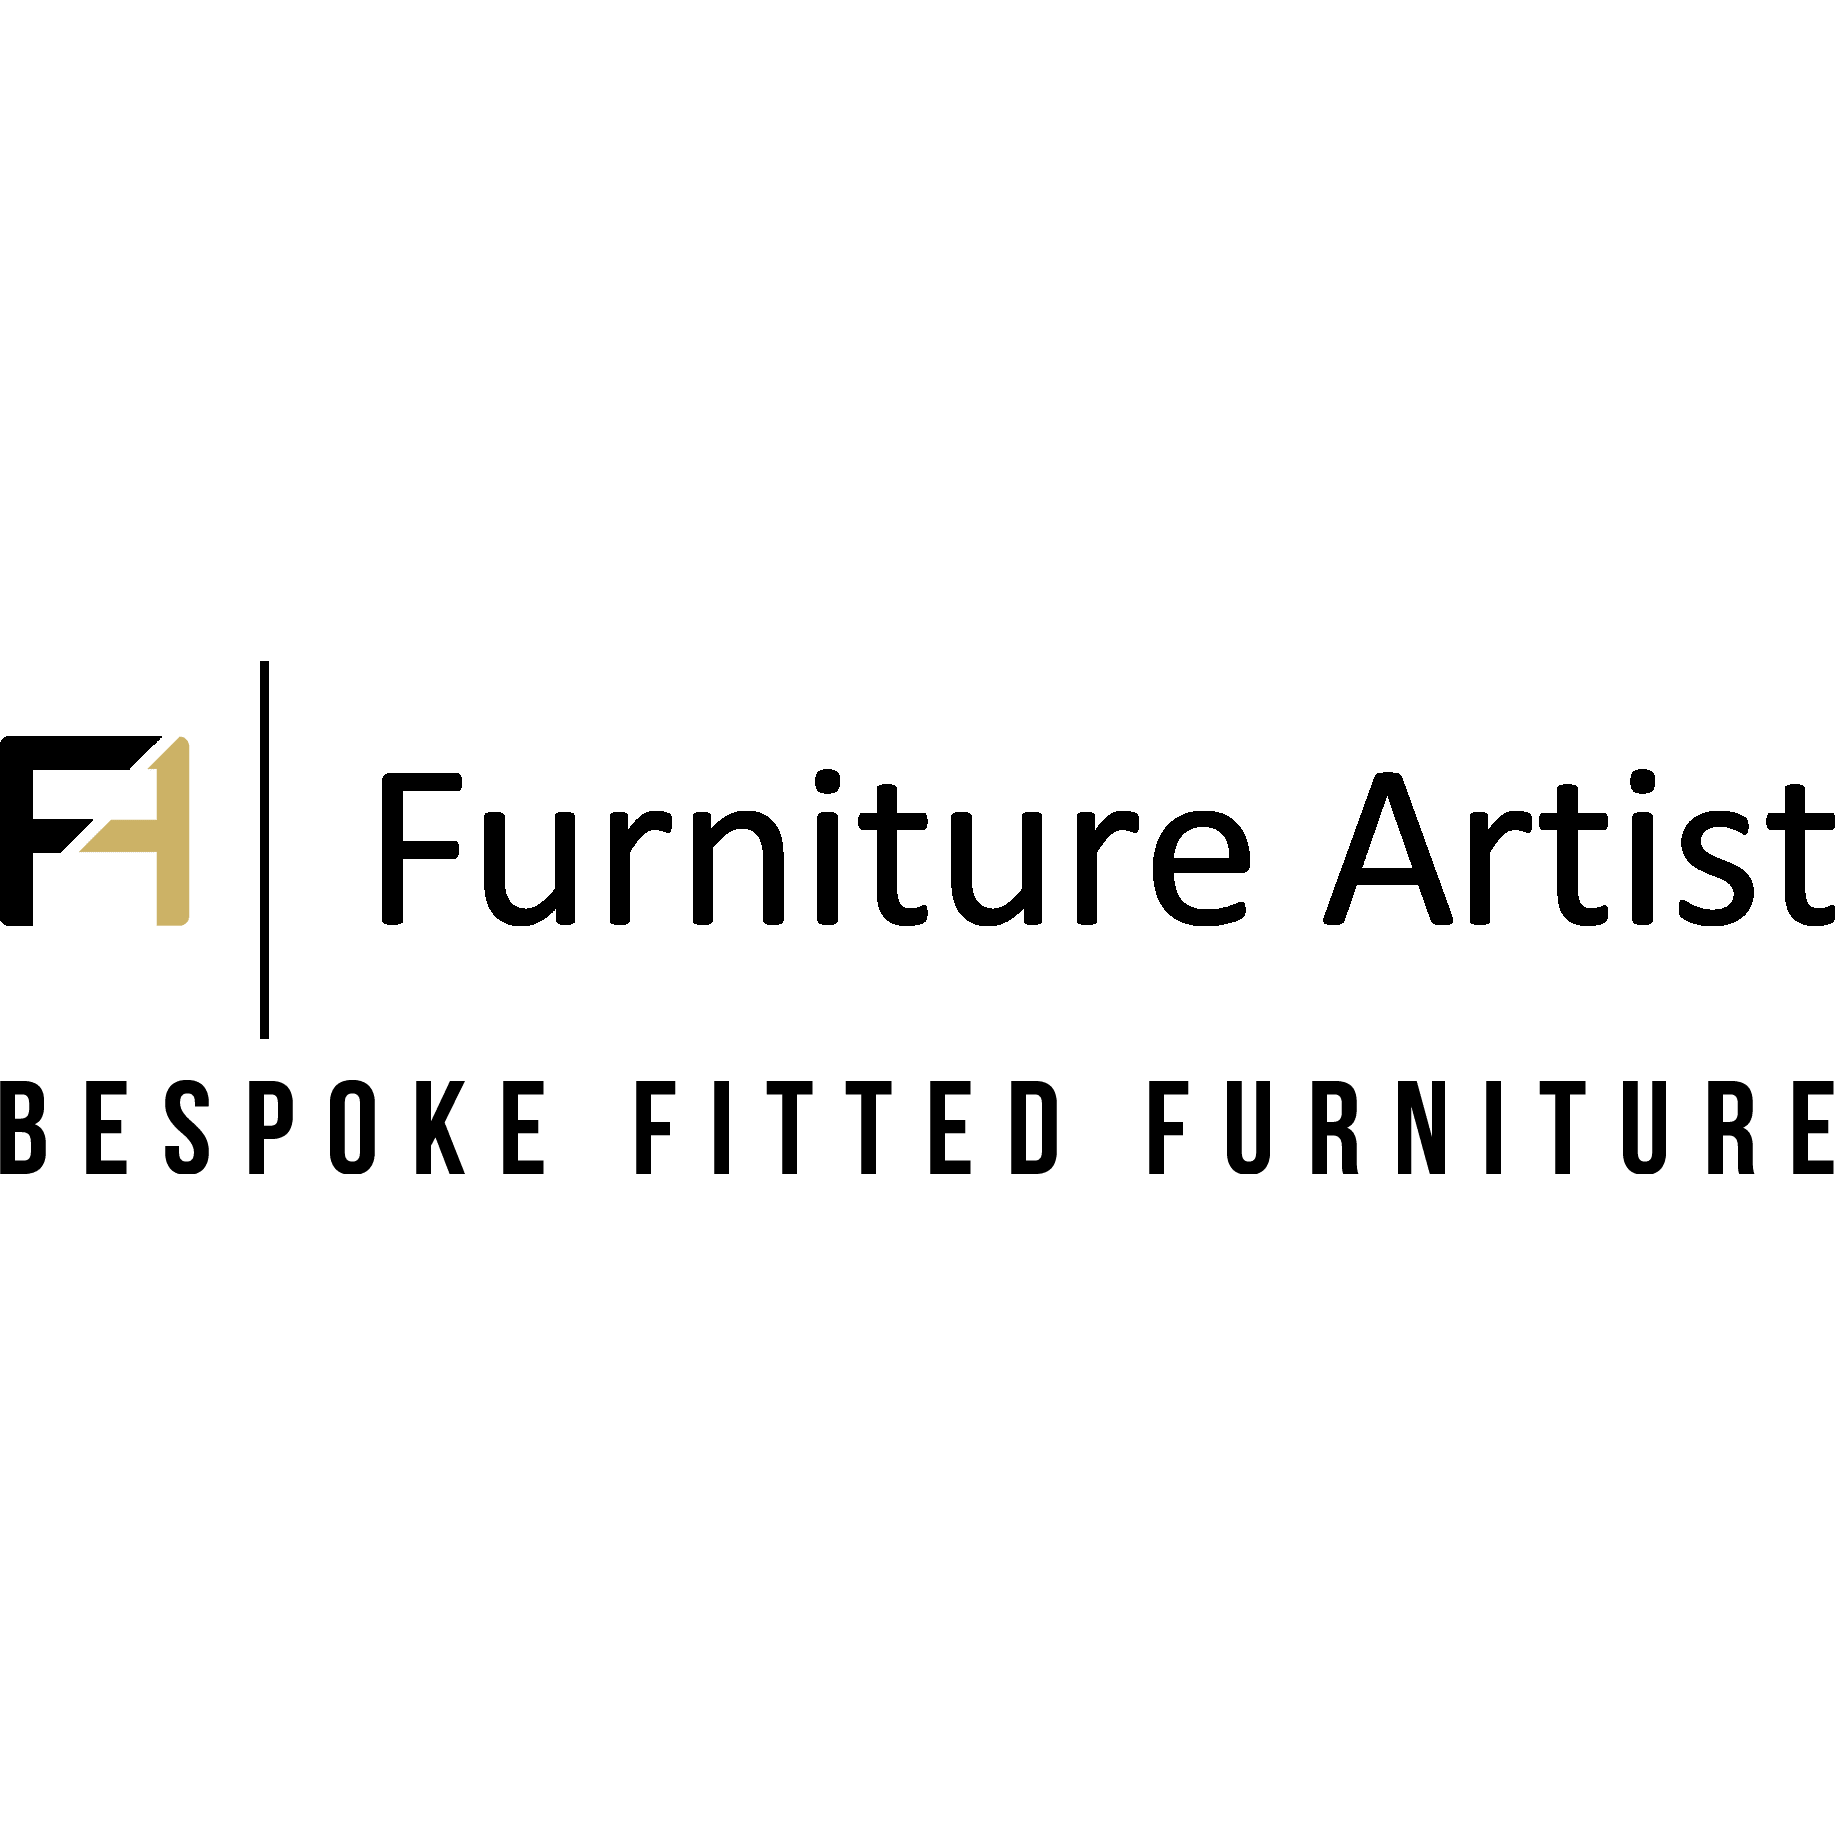 Furniture Artist Ltd - London, London N10 2RT - 020 8787 5197 | ShowMeLocal.com